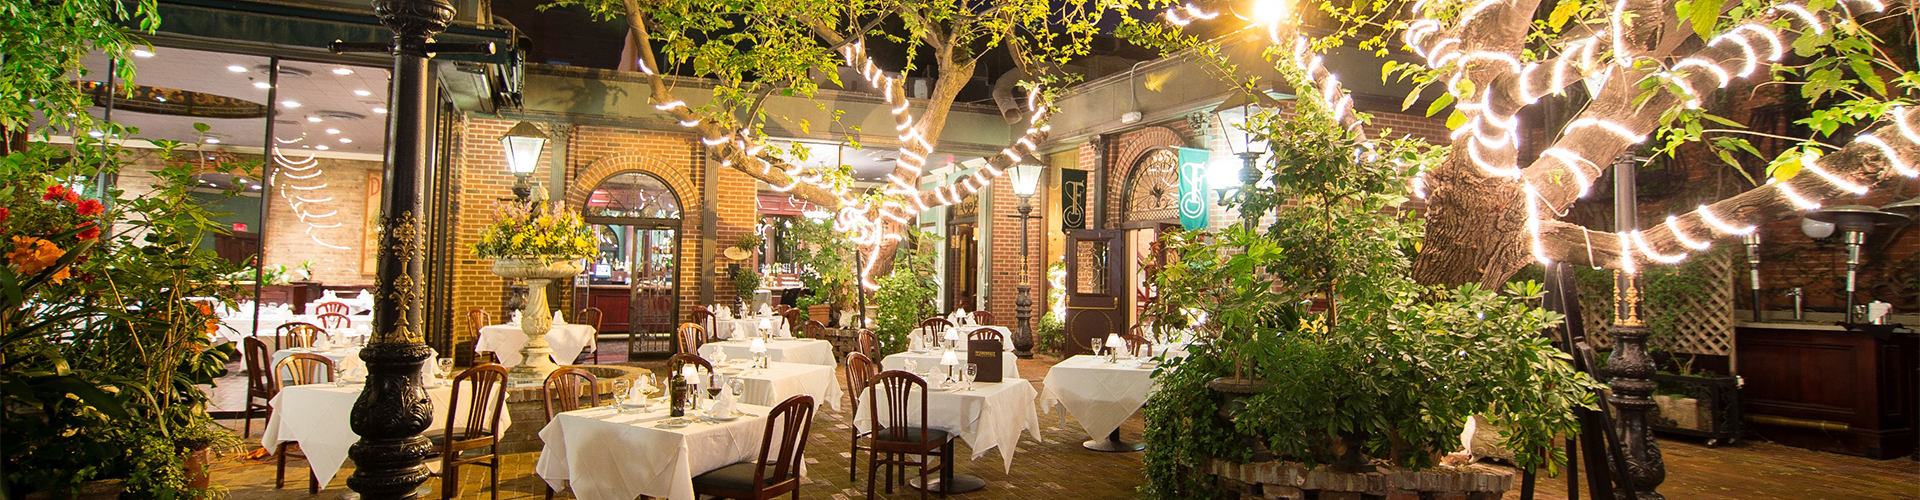 Best wine restaurants